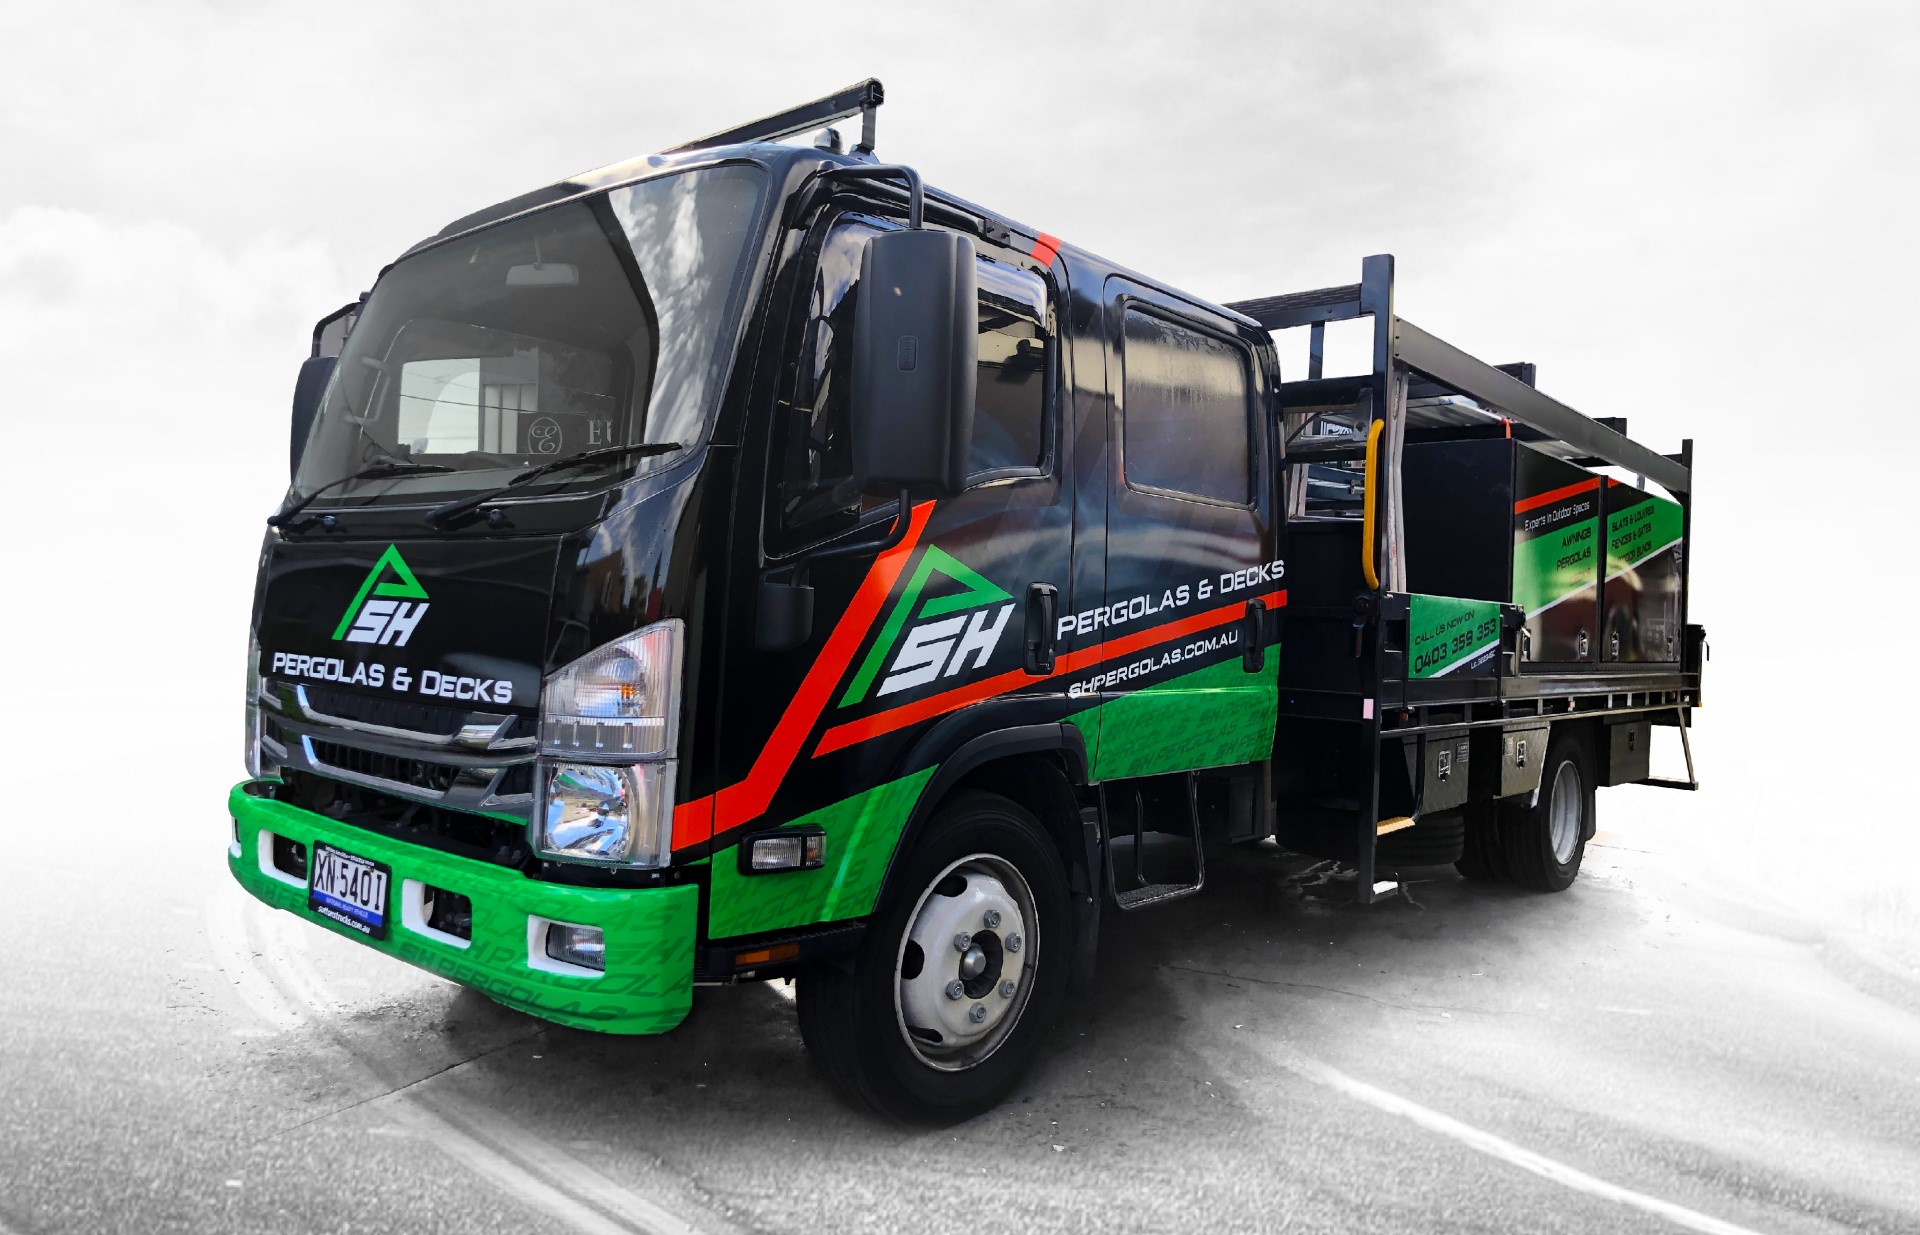 Truck wraps and signage